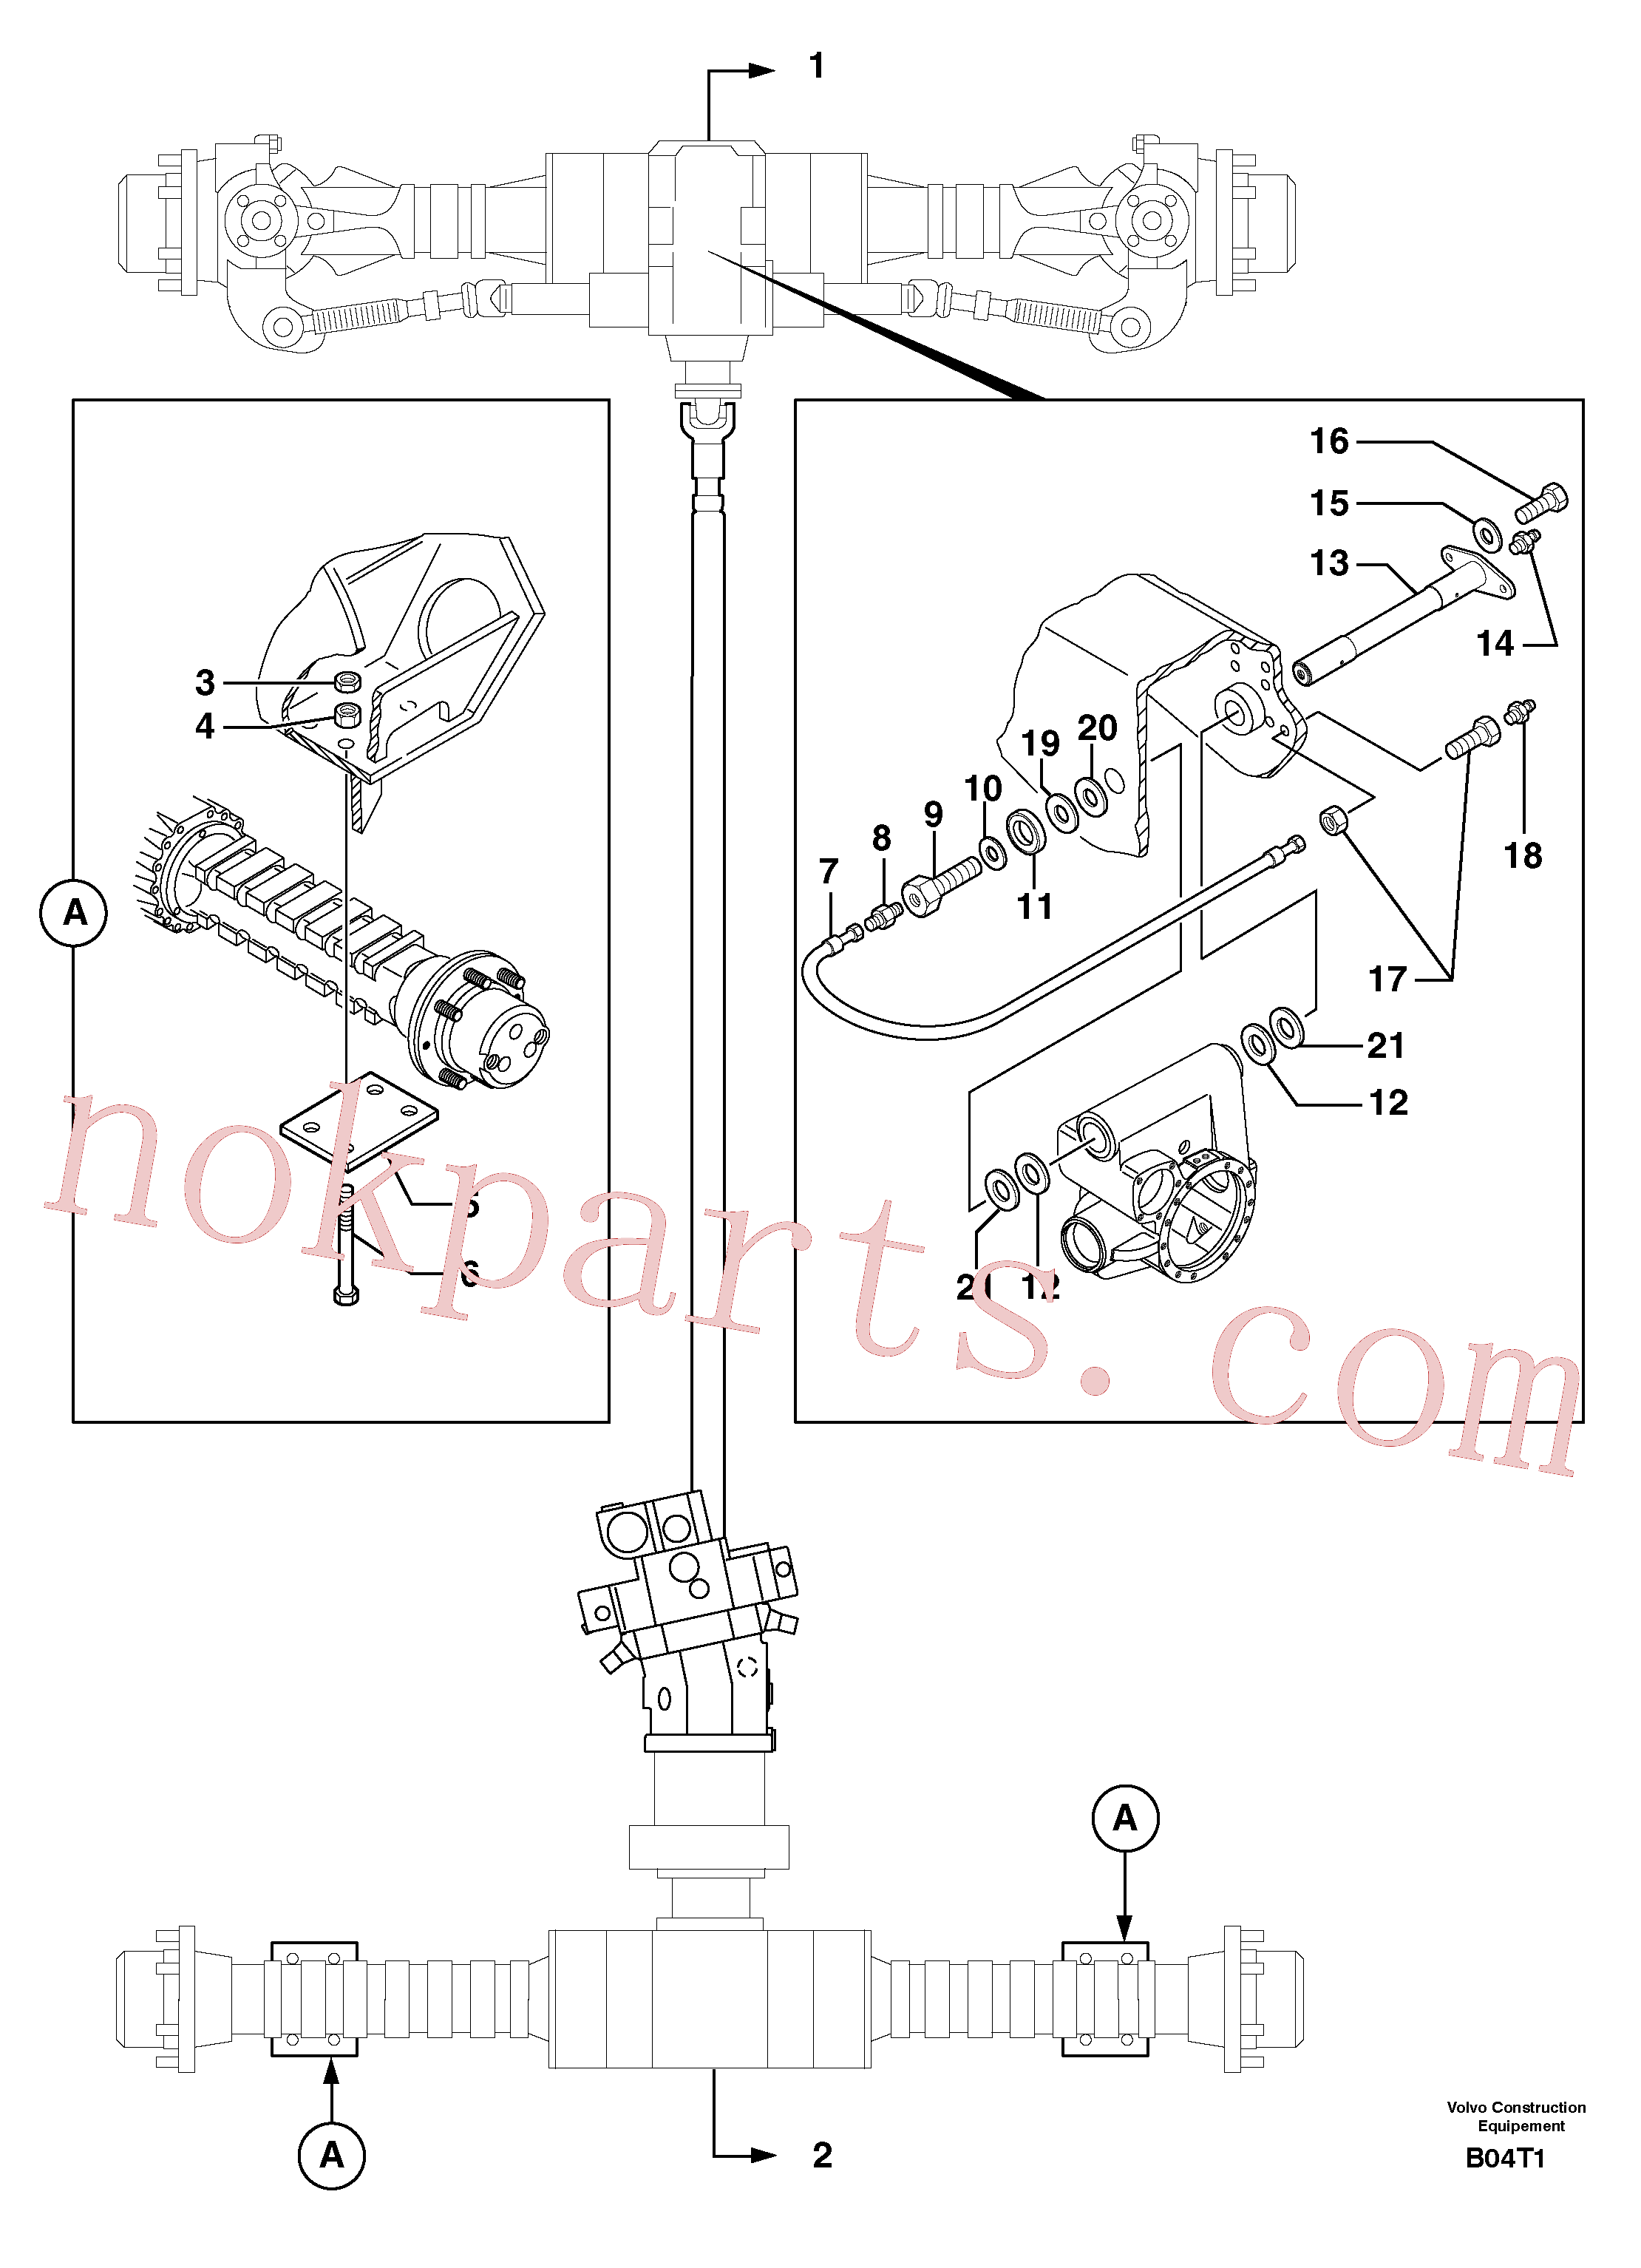 VOE11802456 for Volvo Axle cradles and mountings(B04T1 assembly)